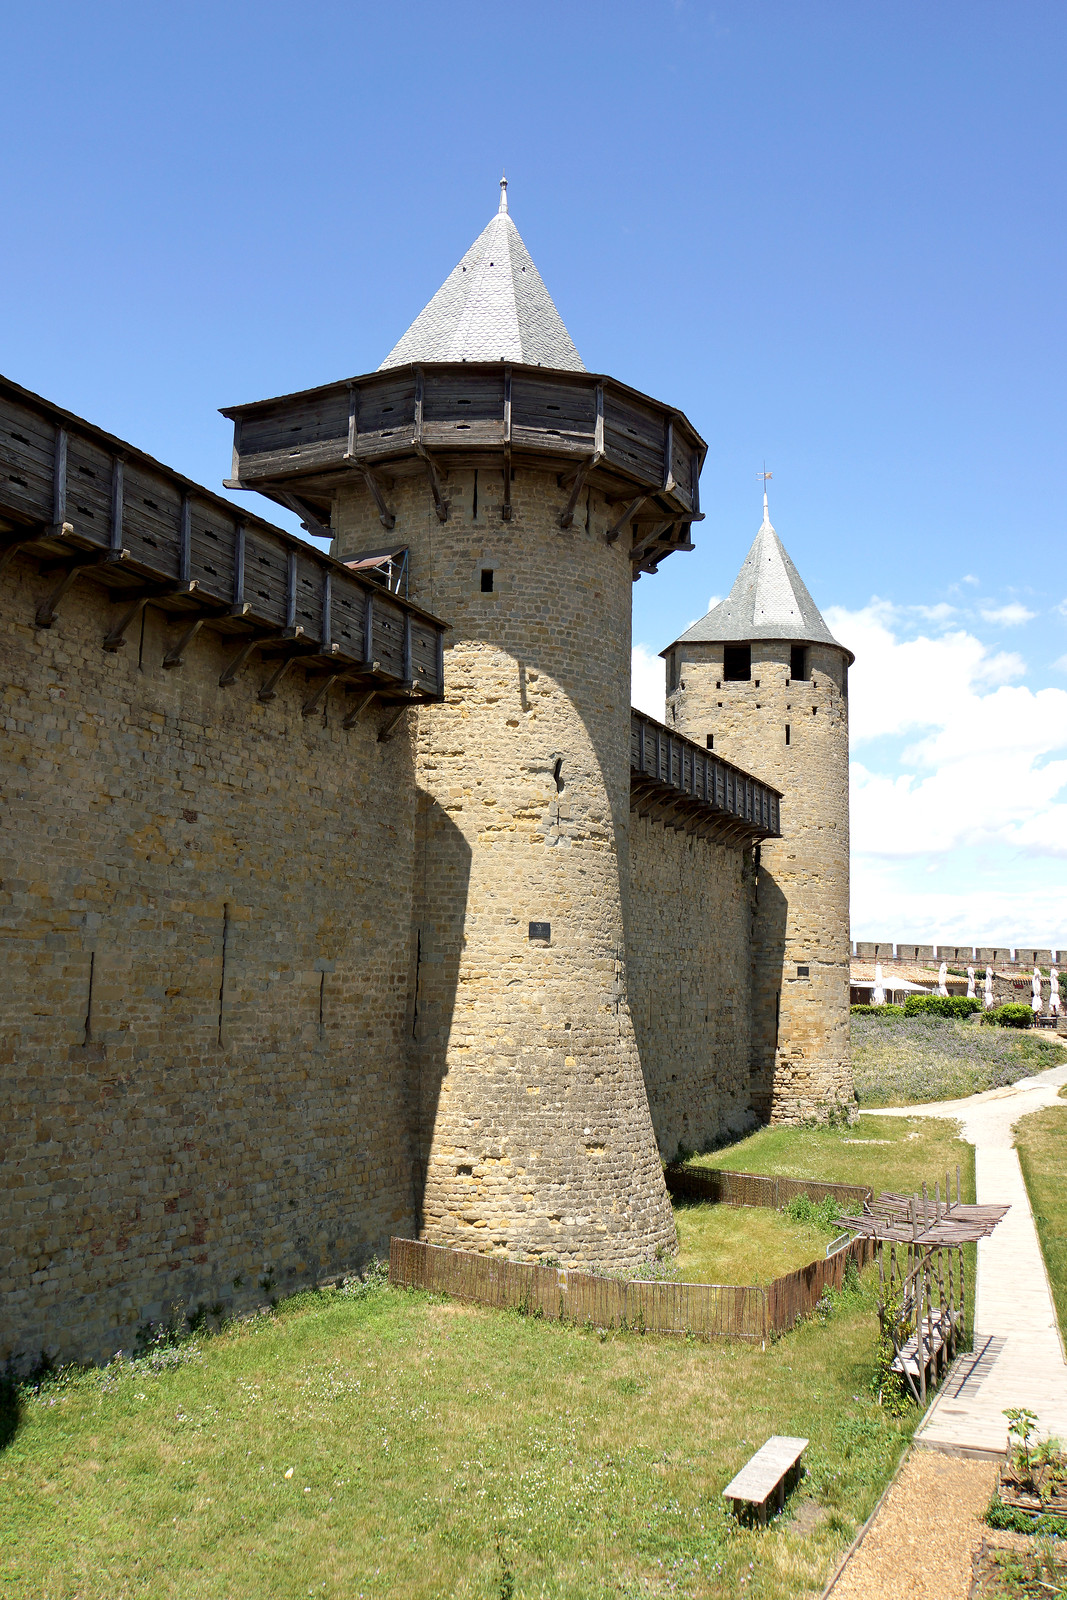 France-002278 - Towers